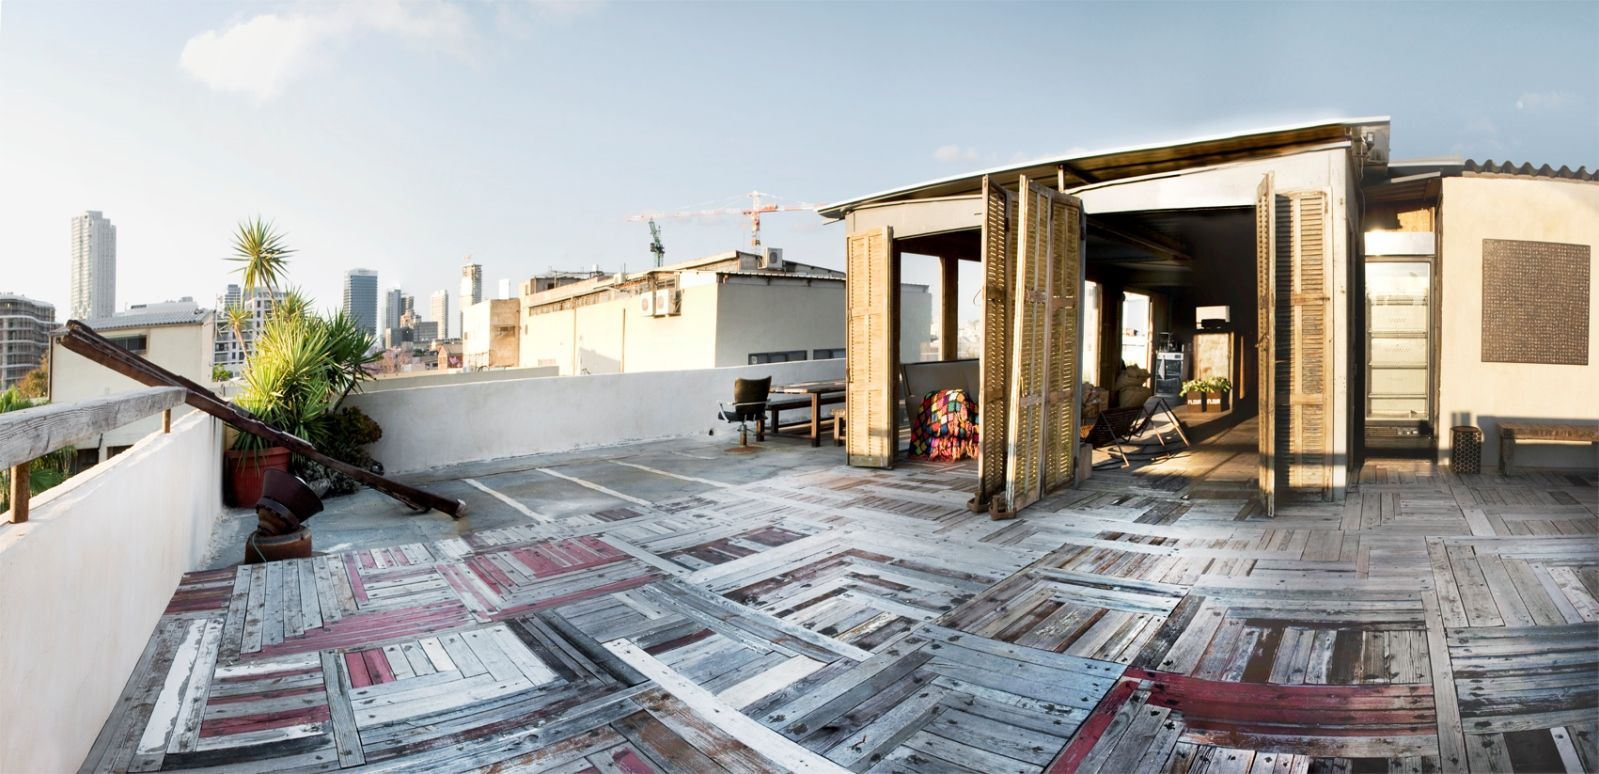 Tel Aviv rooftops are popular for corporate get-togethers. Photo courtesy of Splacer